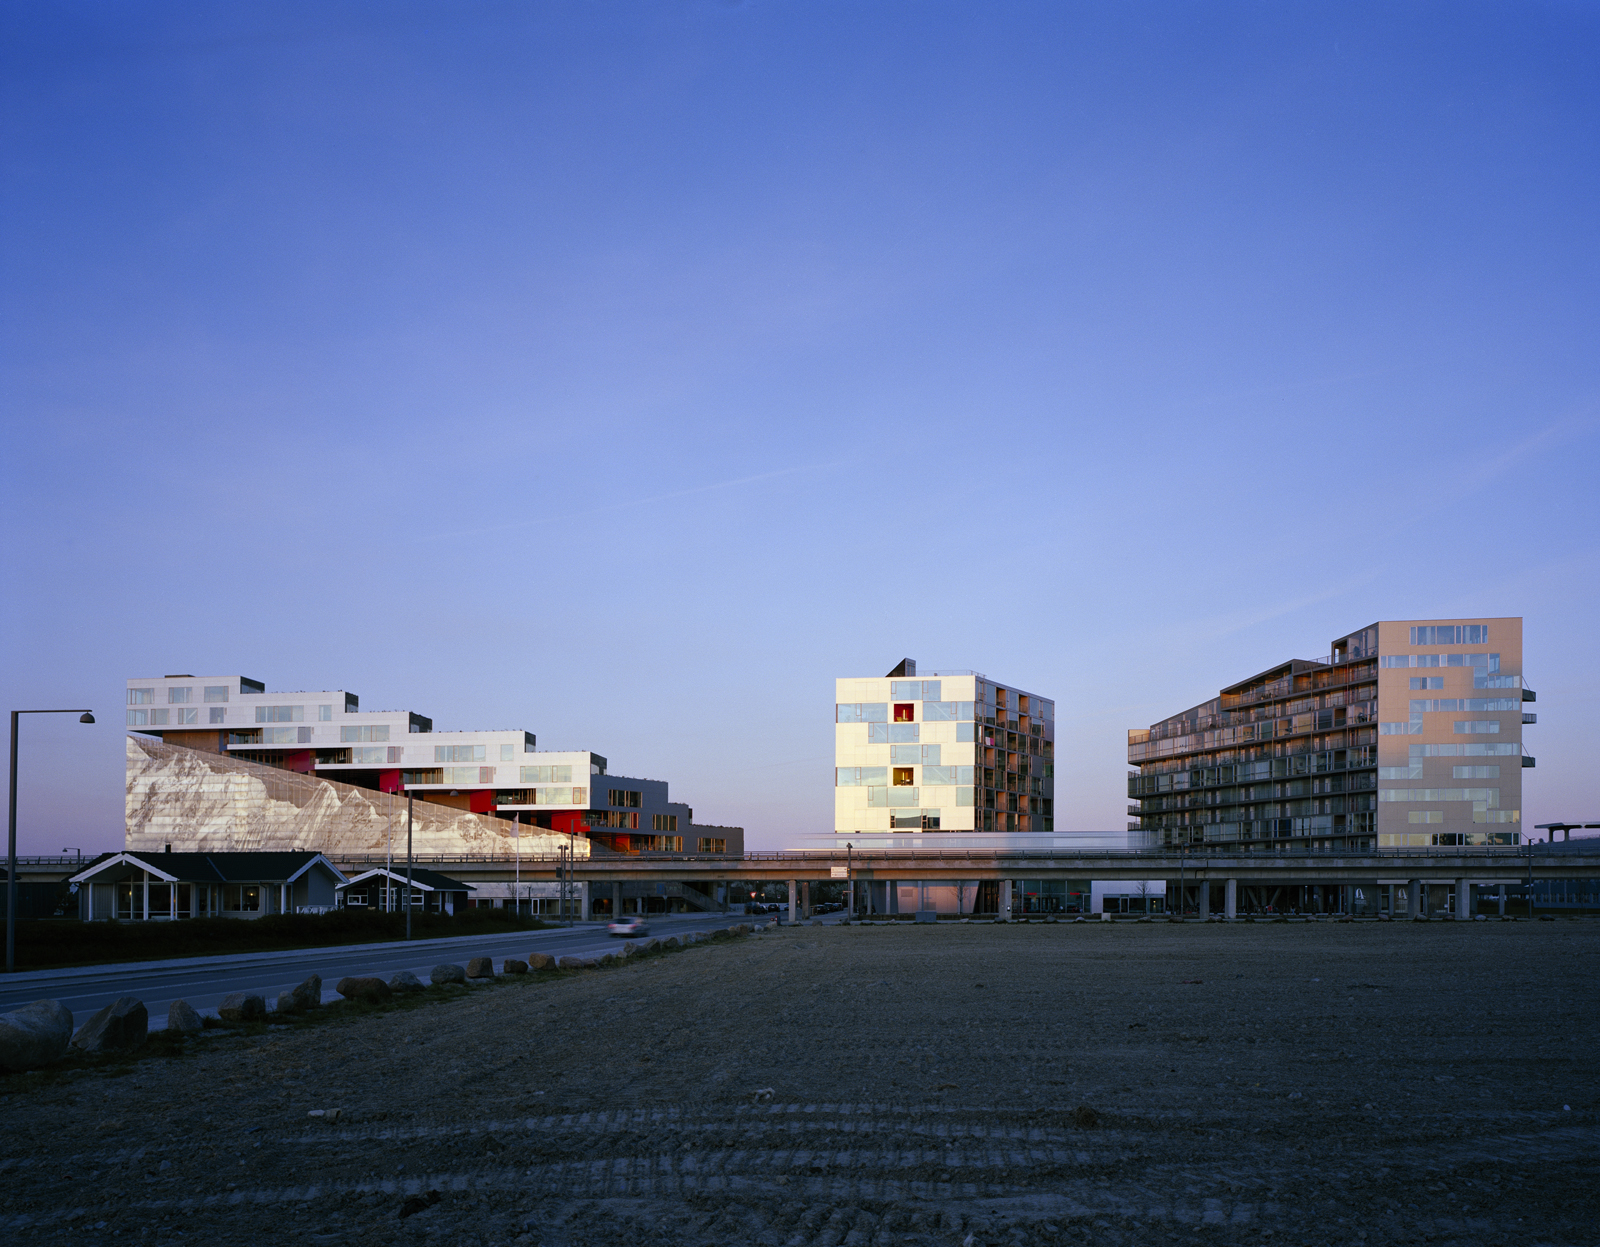 The VM Houses (the two buildings on the right) opened in Ørestad in 2005, with the Mountain Dwellings (left) following in 2008. Up next in the neighborhood: The firm's BIG House (or Figure Eight building) is scheduled to be completed in 2010.